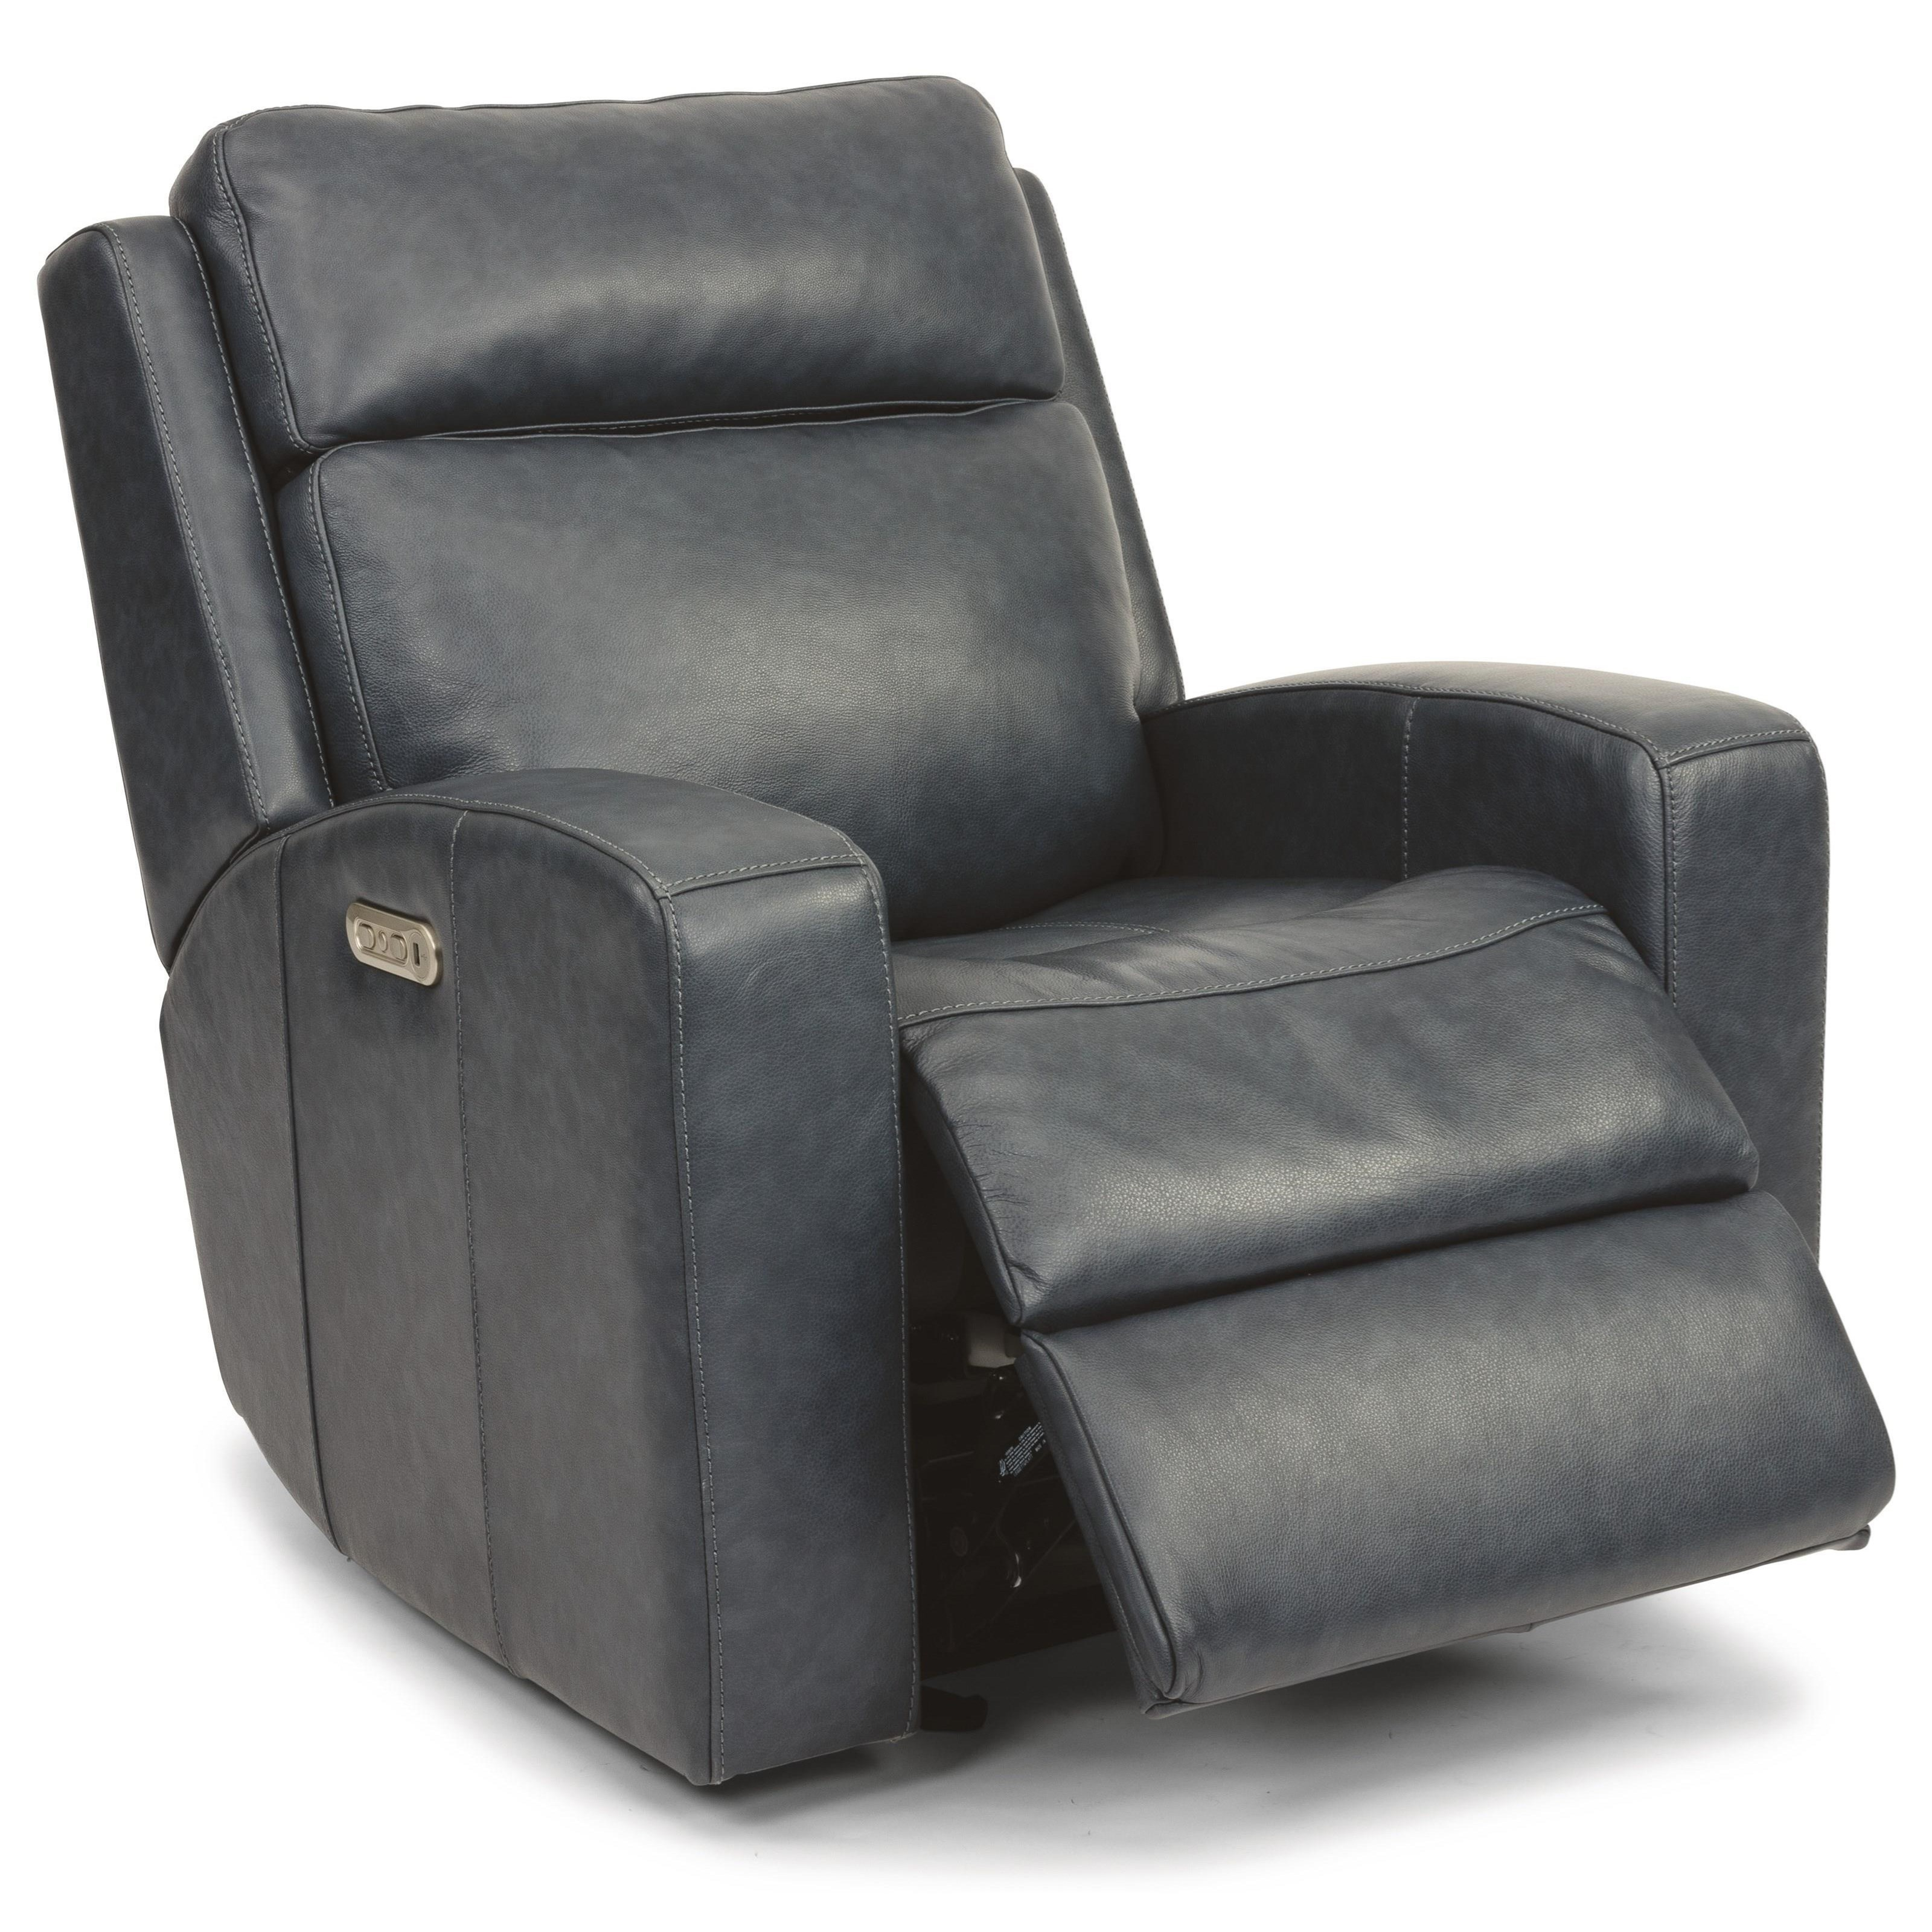 Latitudes - Cody Power Gliding Recliner by Flexsteel at Zak's Home